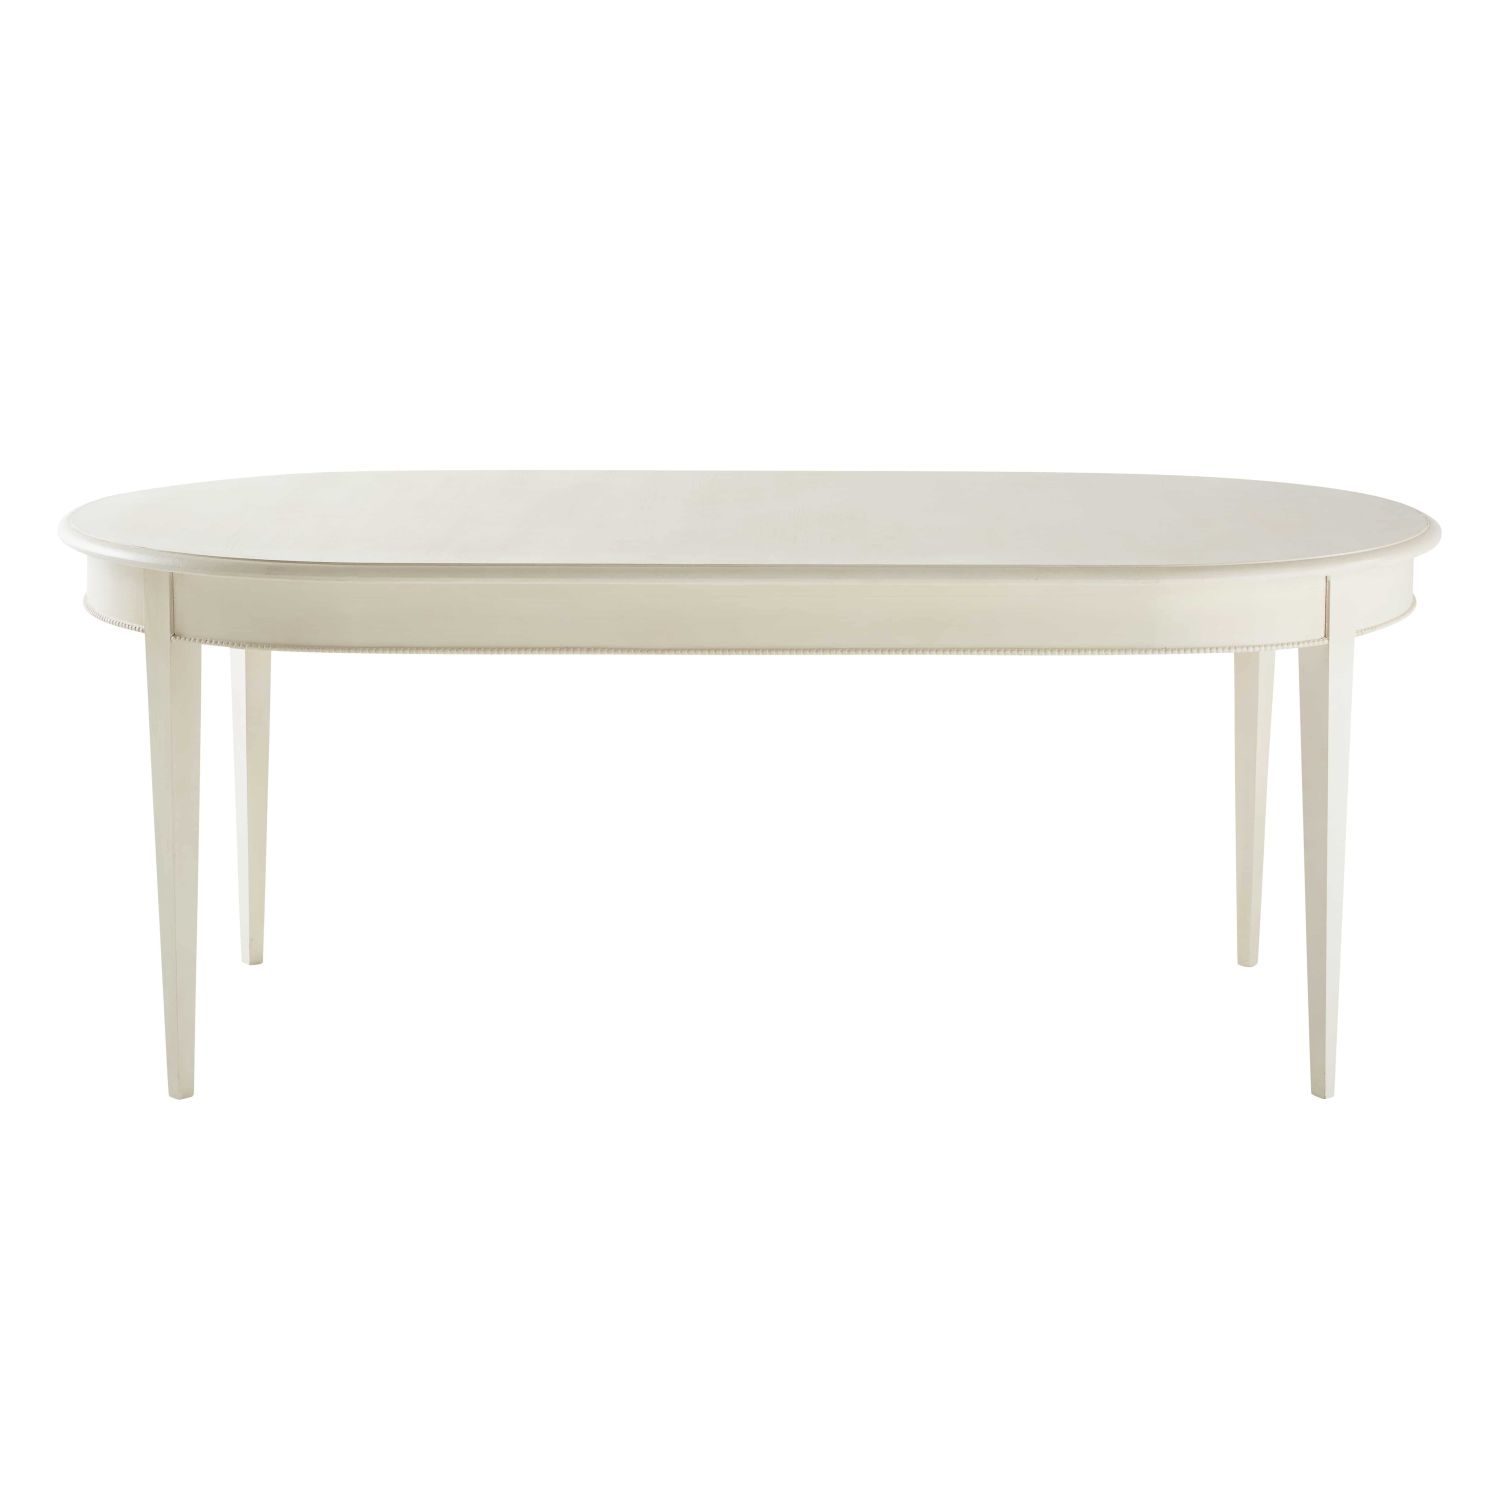 table manger 6 8 personnes blanche l200 maisons du monde. Black Bedroom Furniture Sets. Home Design Ideas